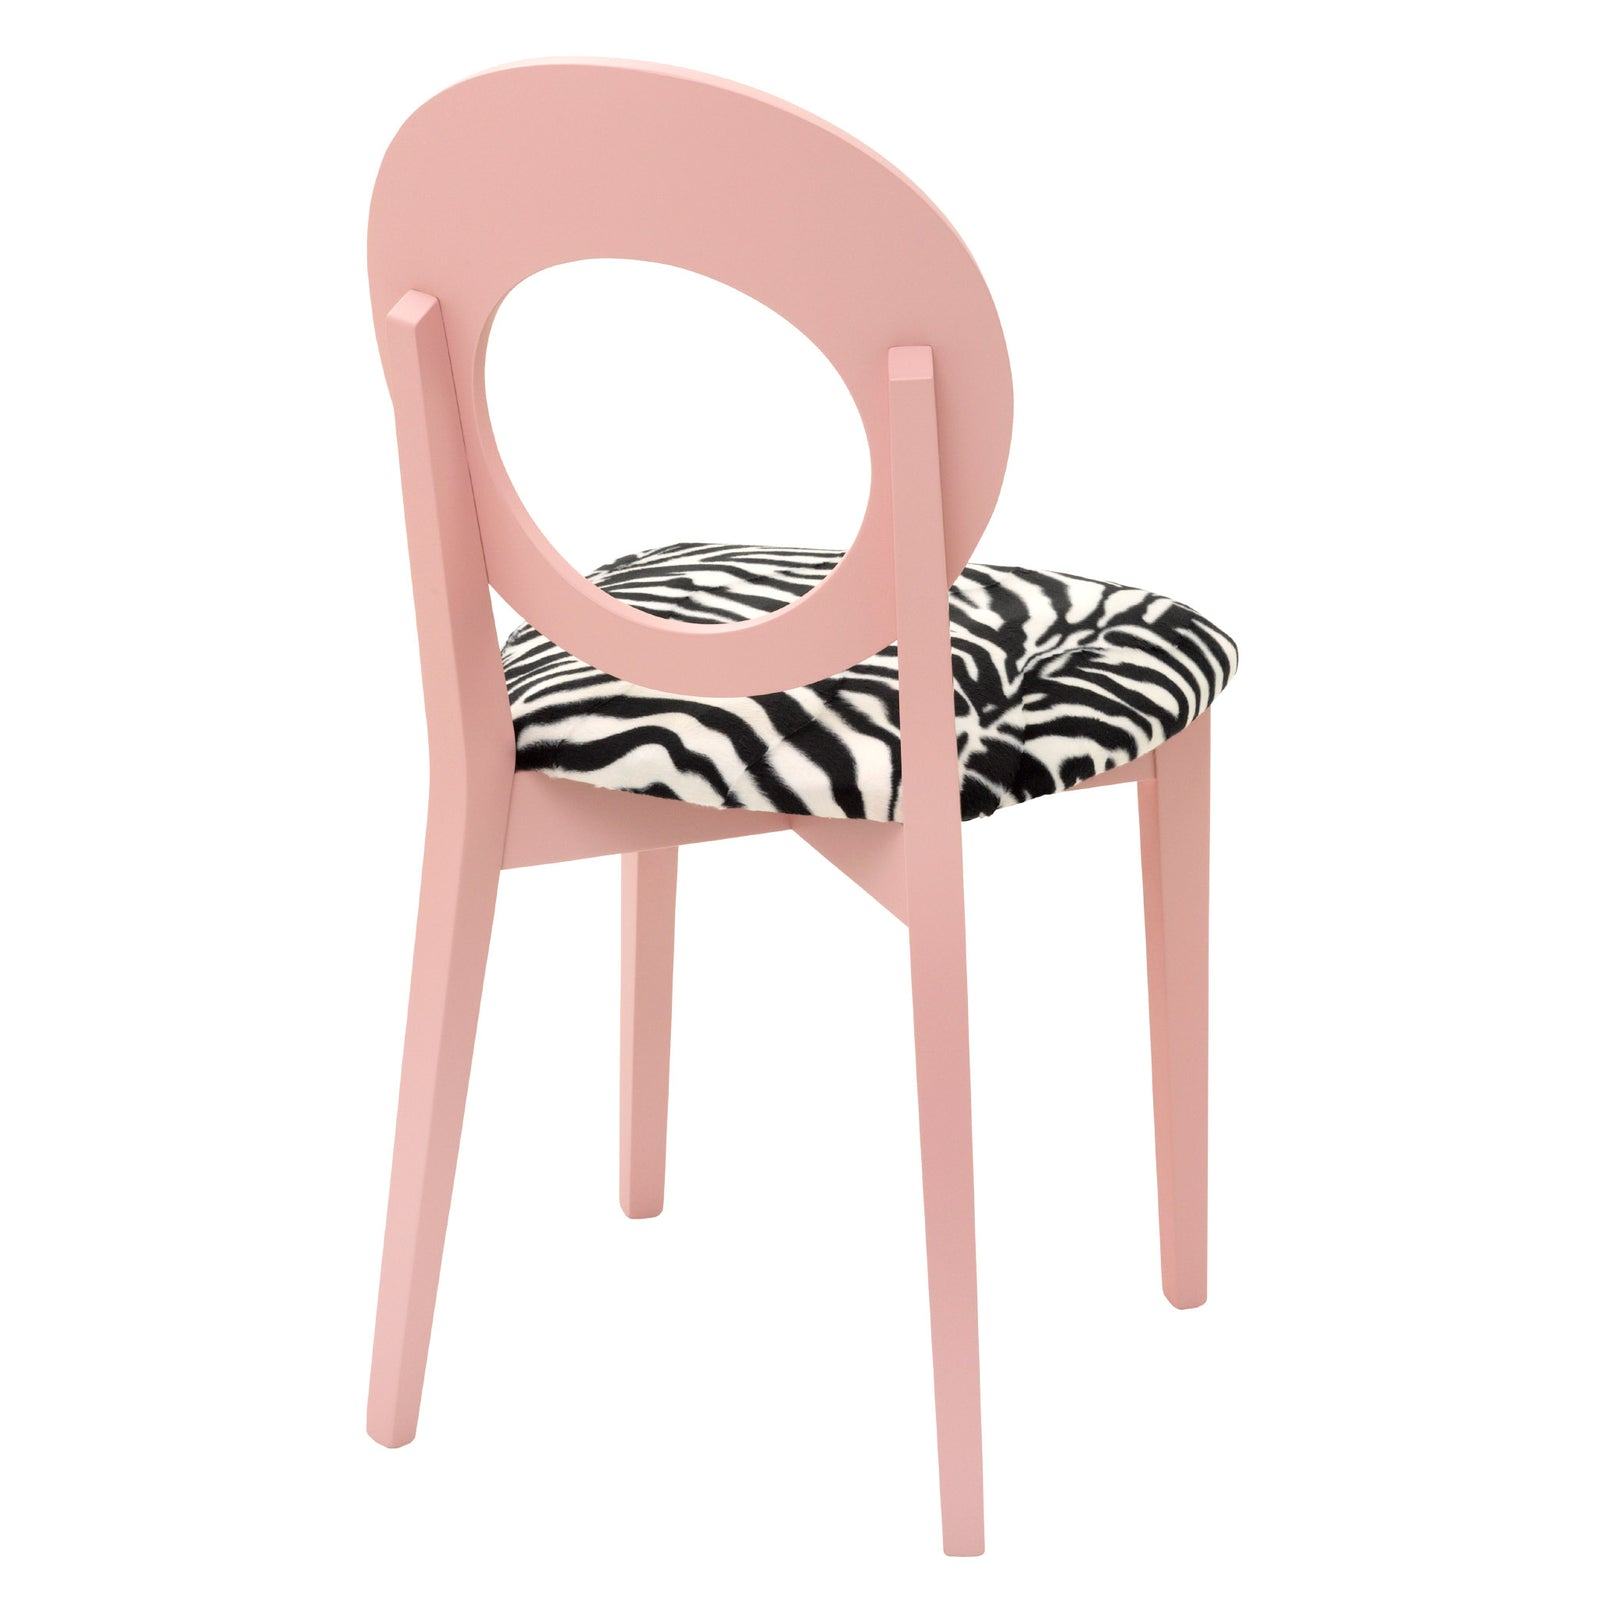 Chloe Contemporary Chair  in Luxurious Zebra Faux Fur and hand finished in Nancy's Blushes